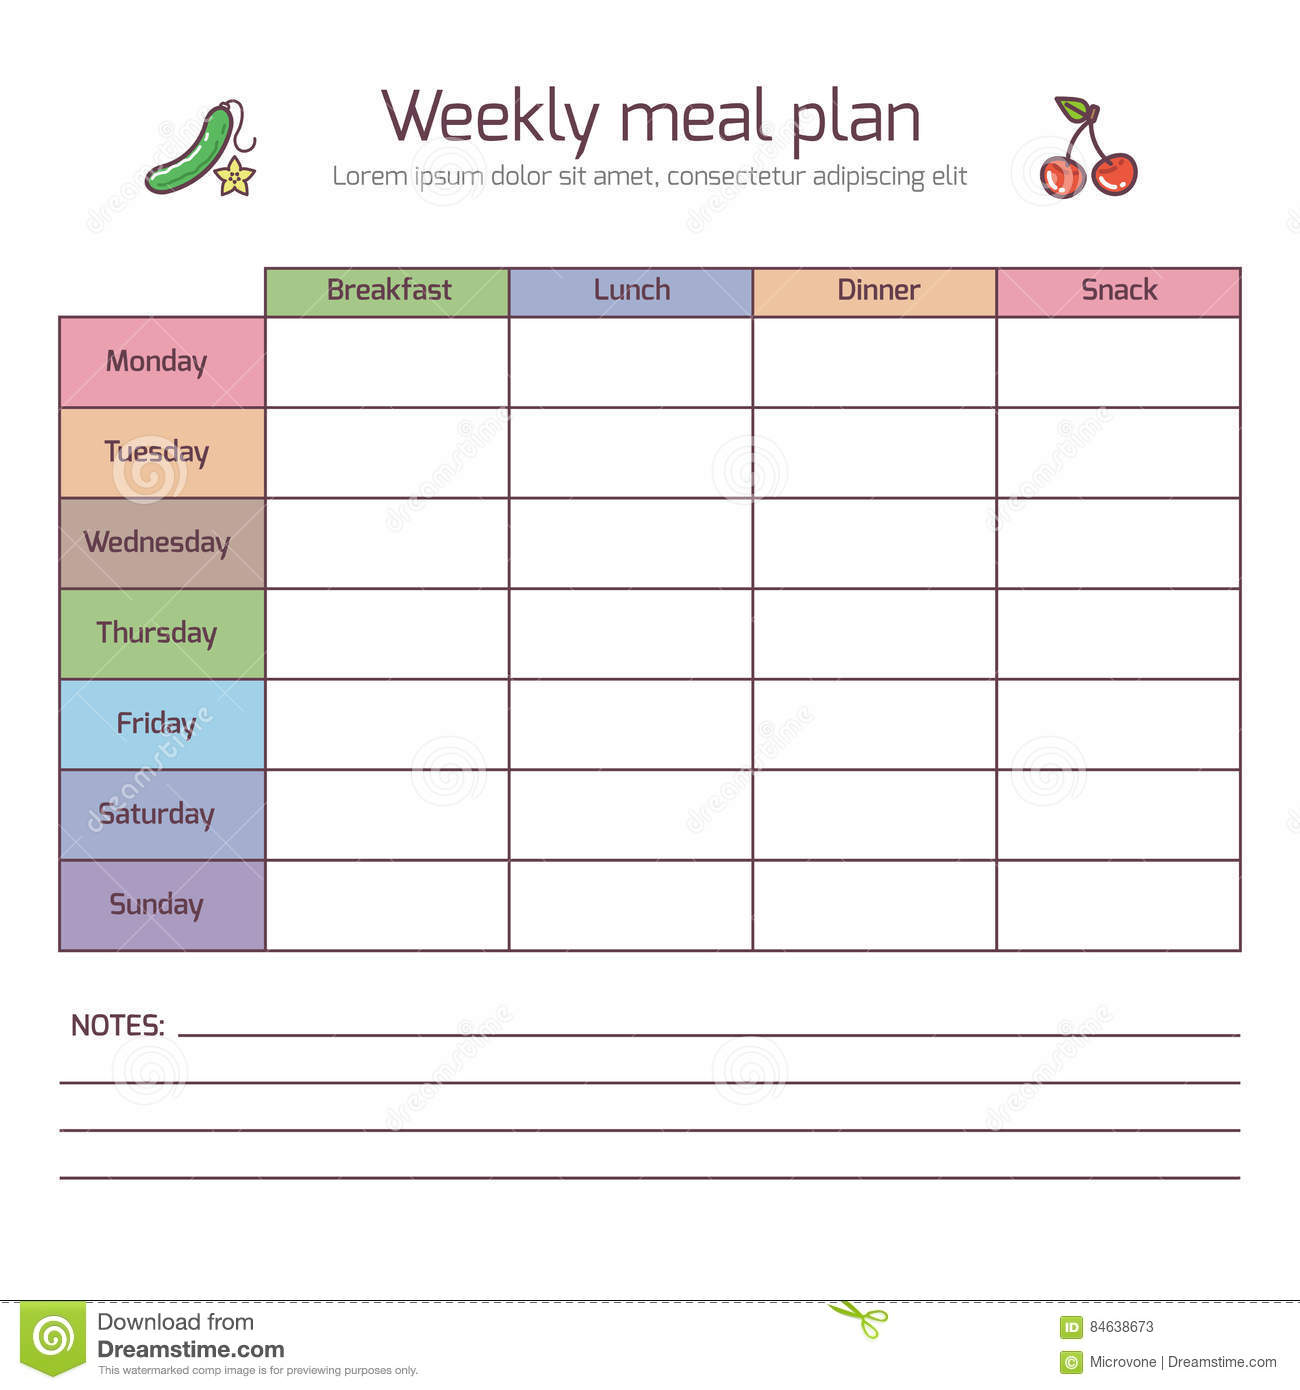 Weekly meal plan mealtime vector diary cartoon vector for Planner casa